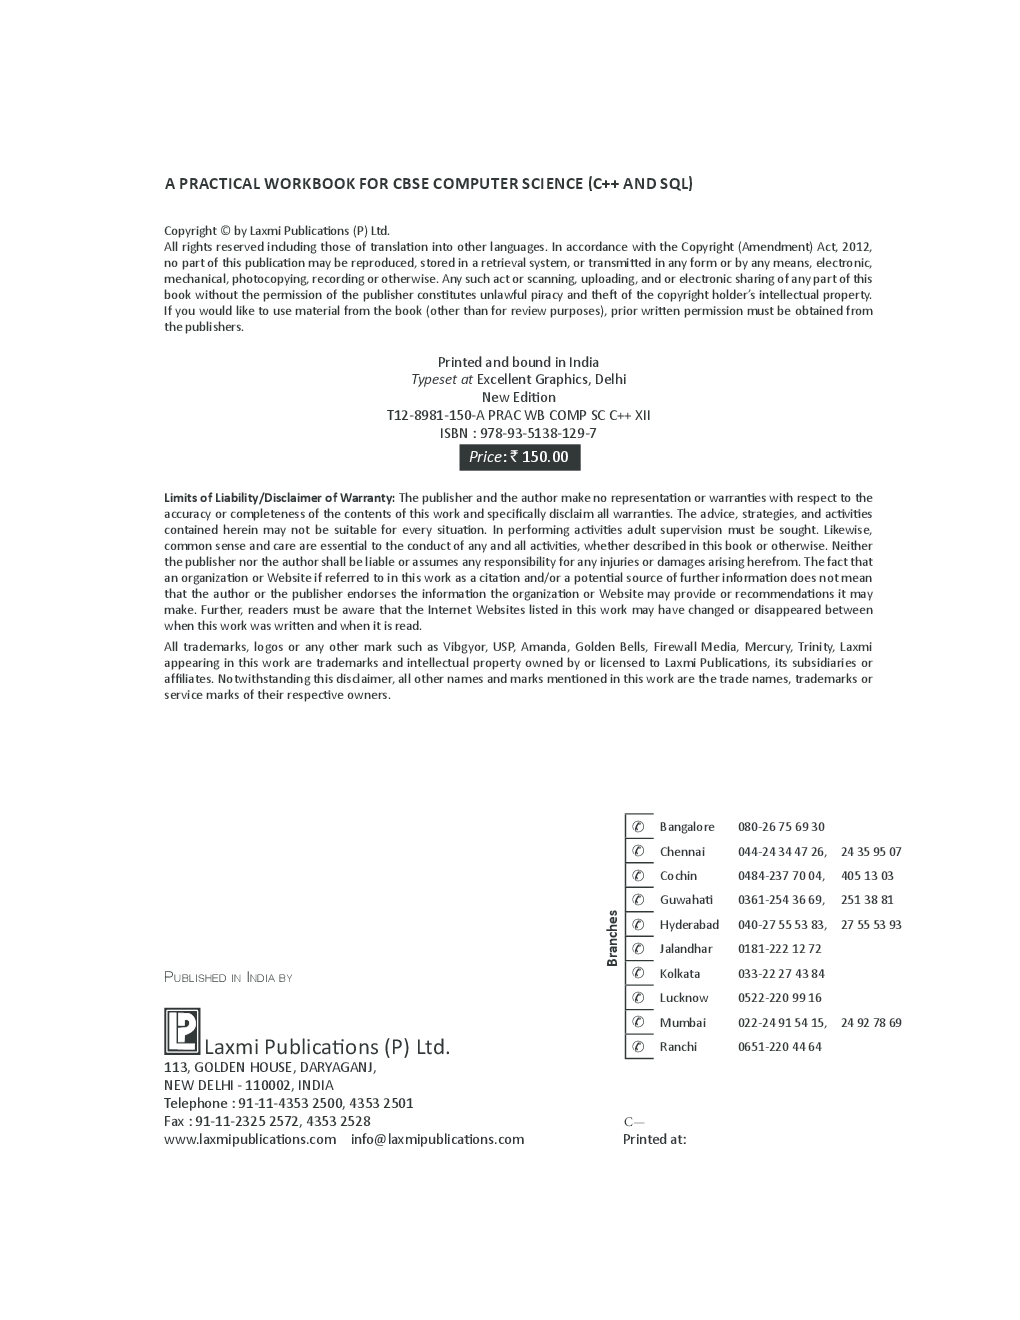 A Practical Workbook for Computer  Science (C++ and SQL) Class 12th  New 2014 - Page 4